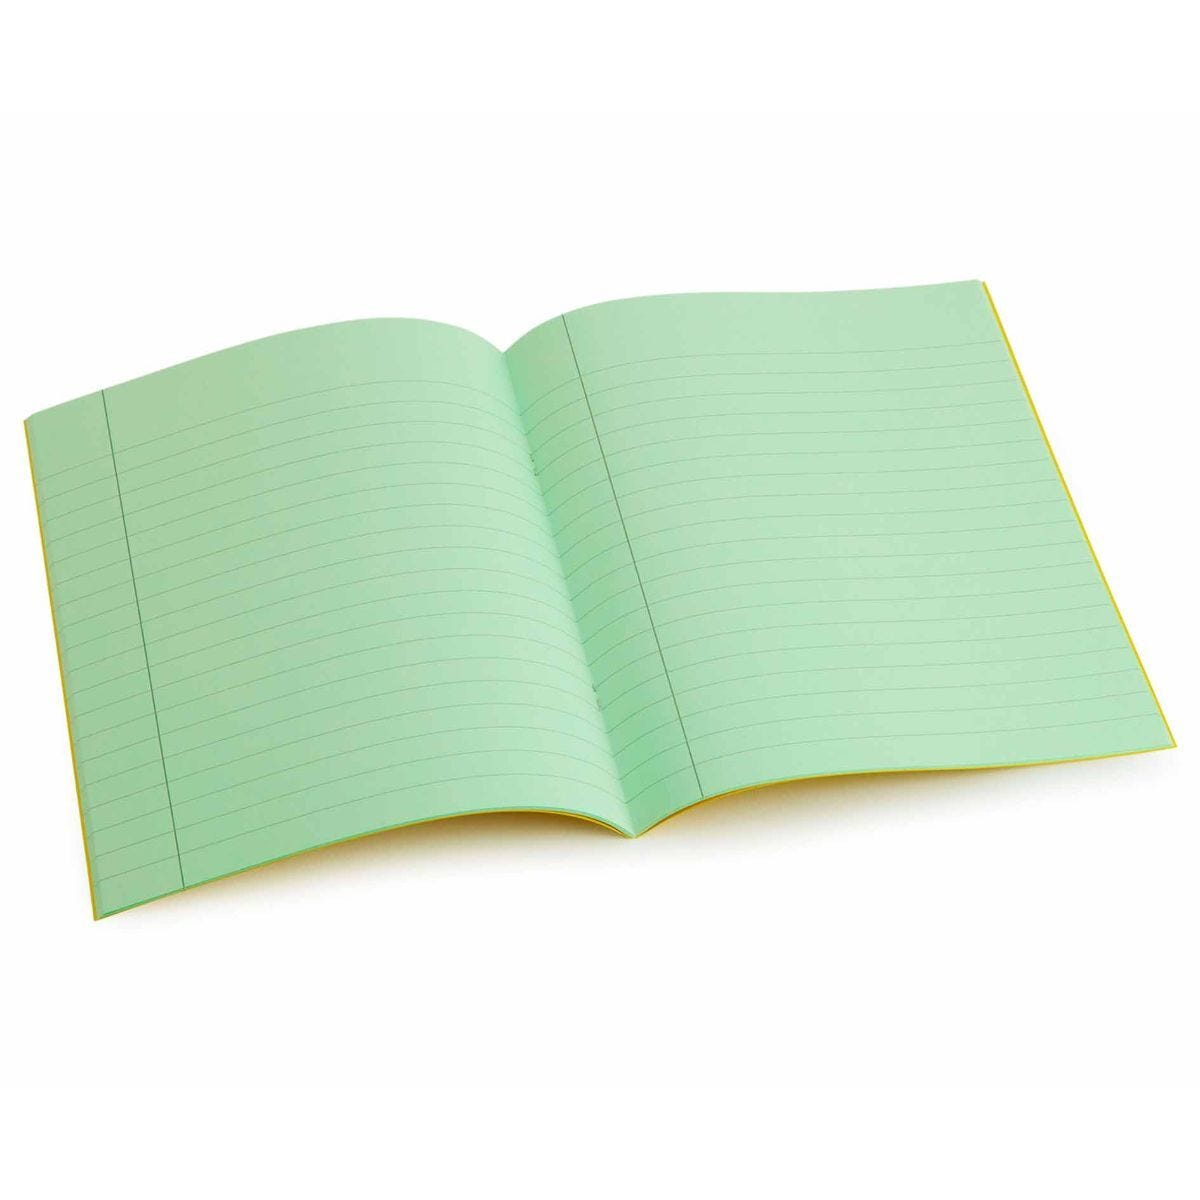 Tinted Exercise Book Standard 7x9 Lined 10mm Leaf Green